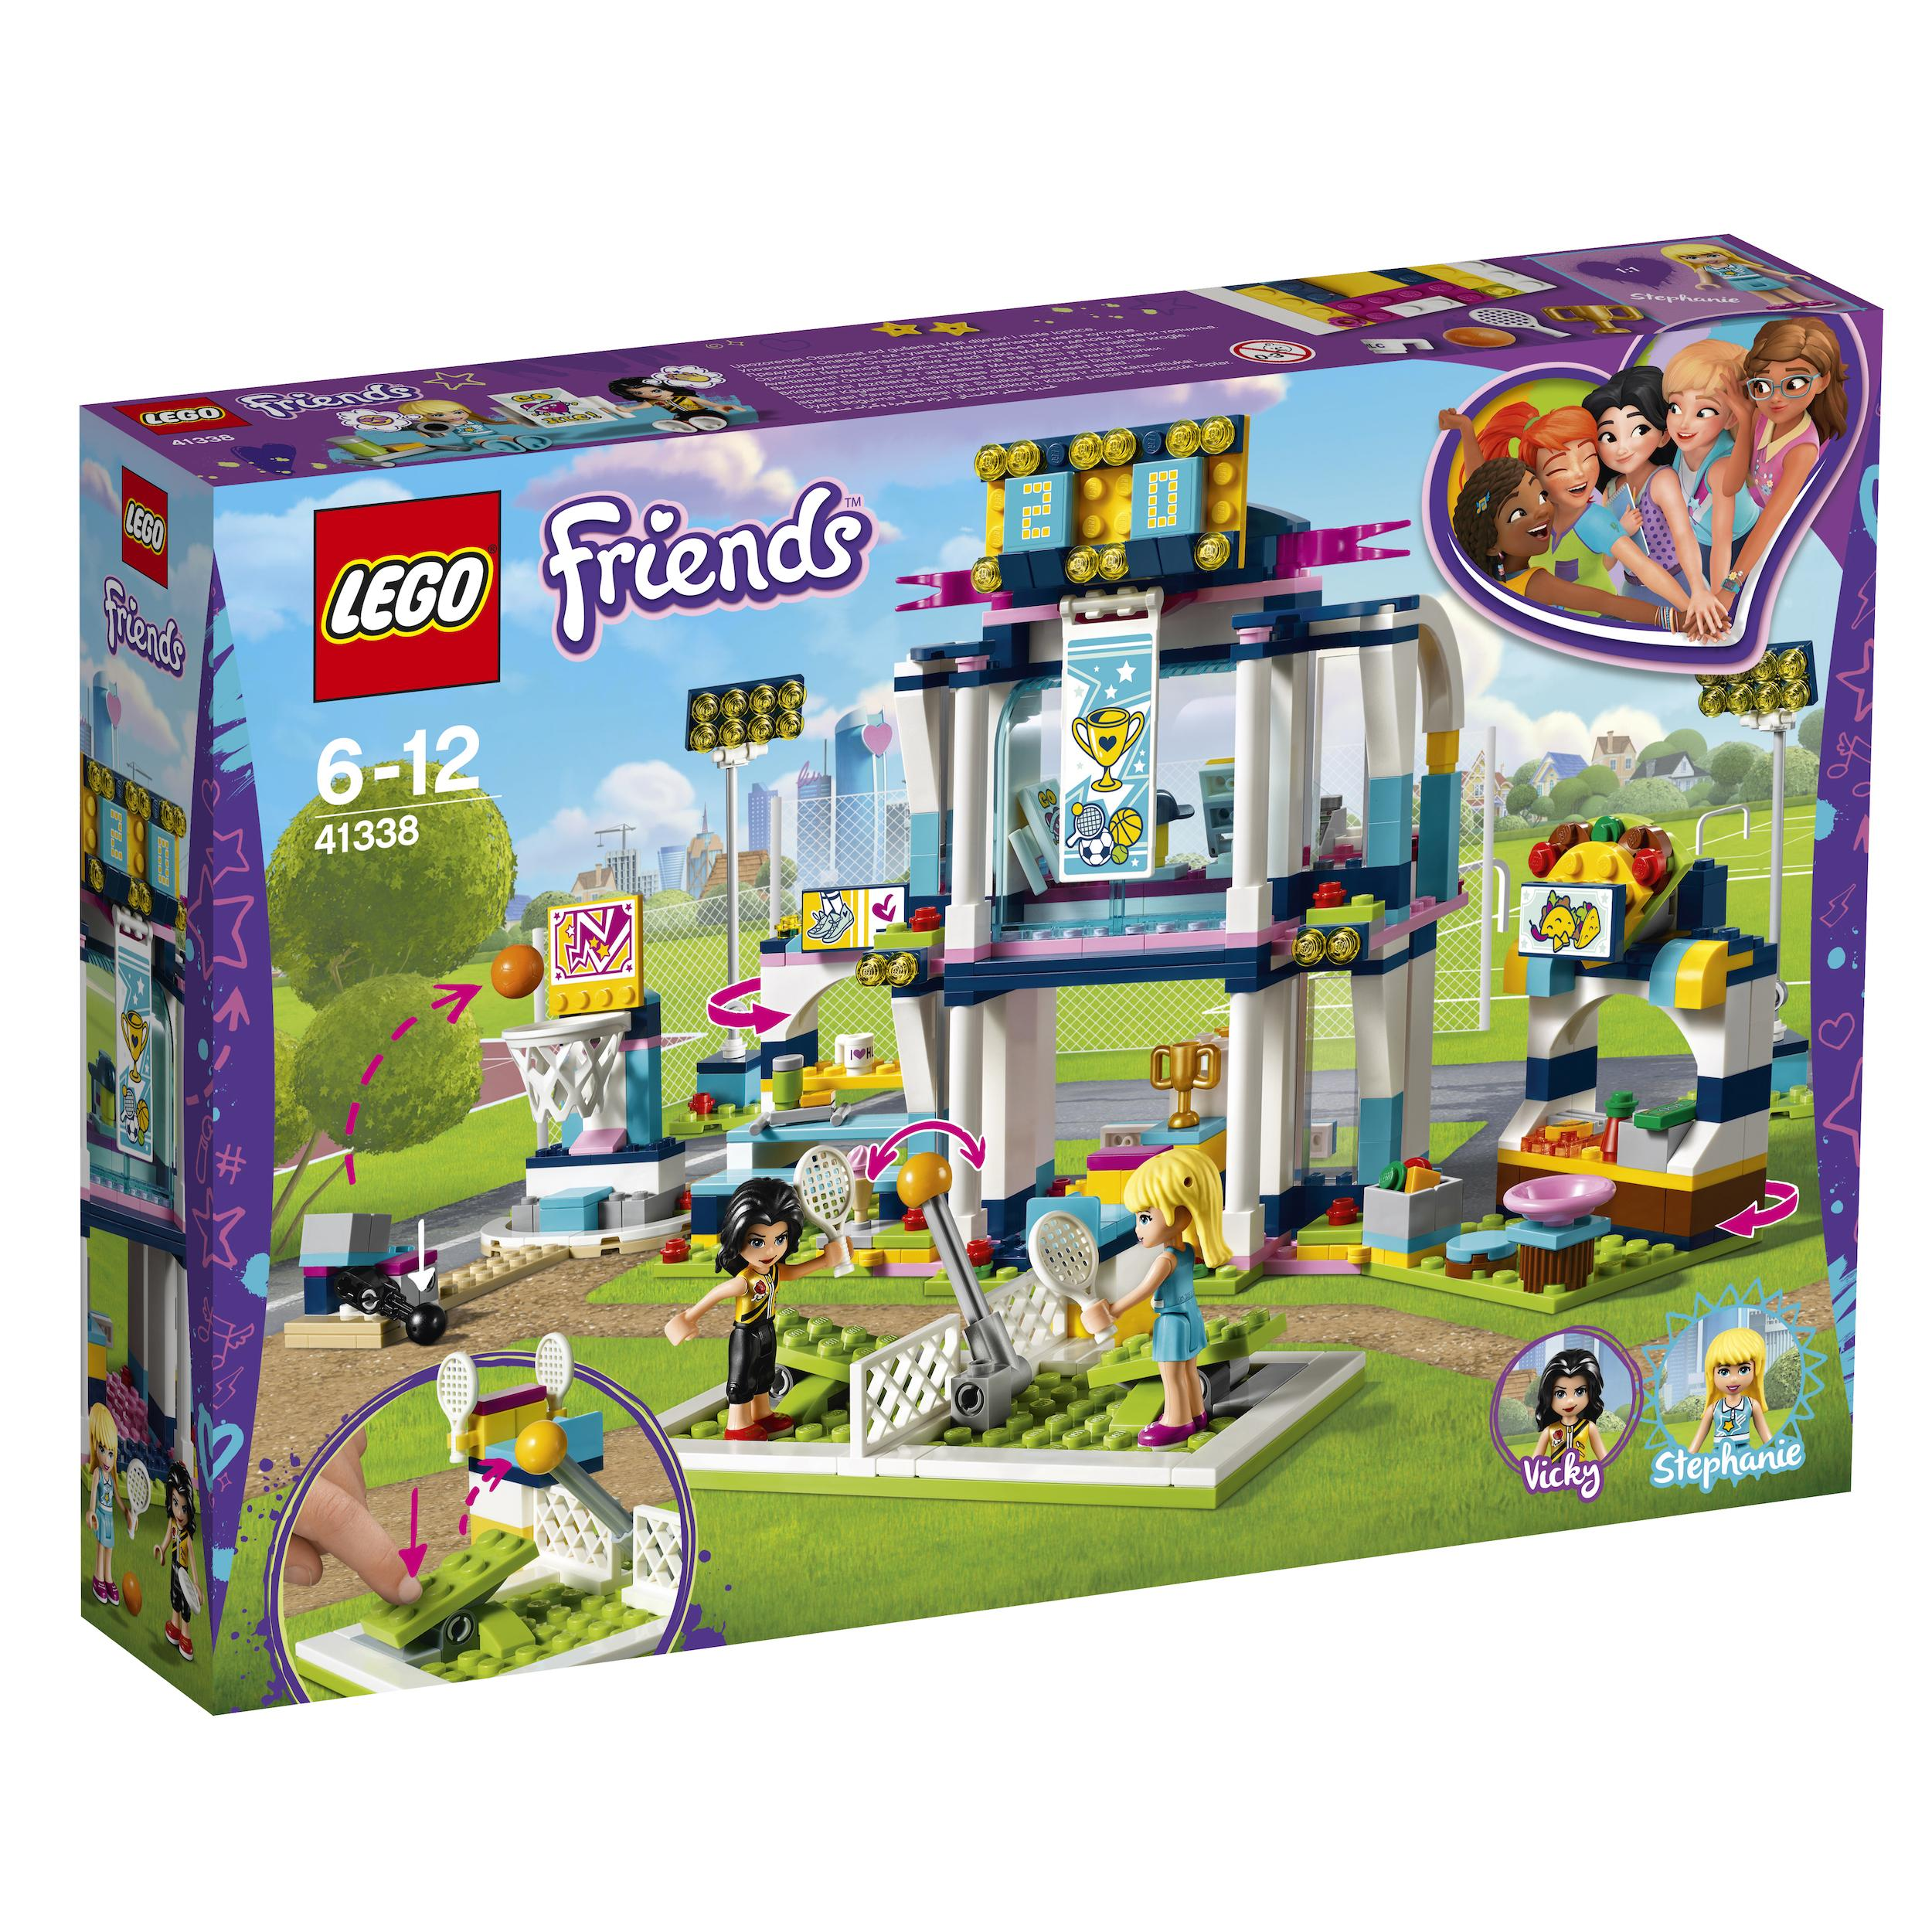 Lego Friends Stephanie's Sports Arena (41338)